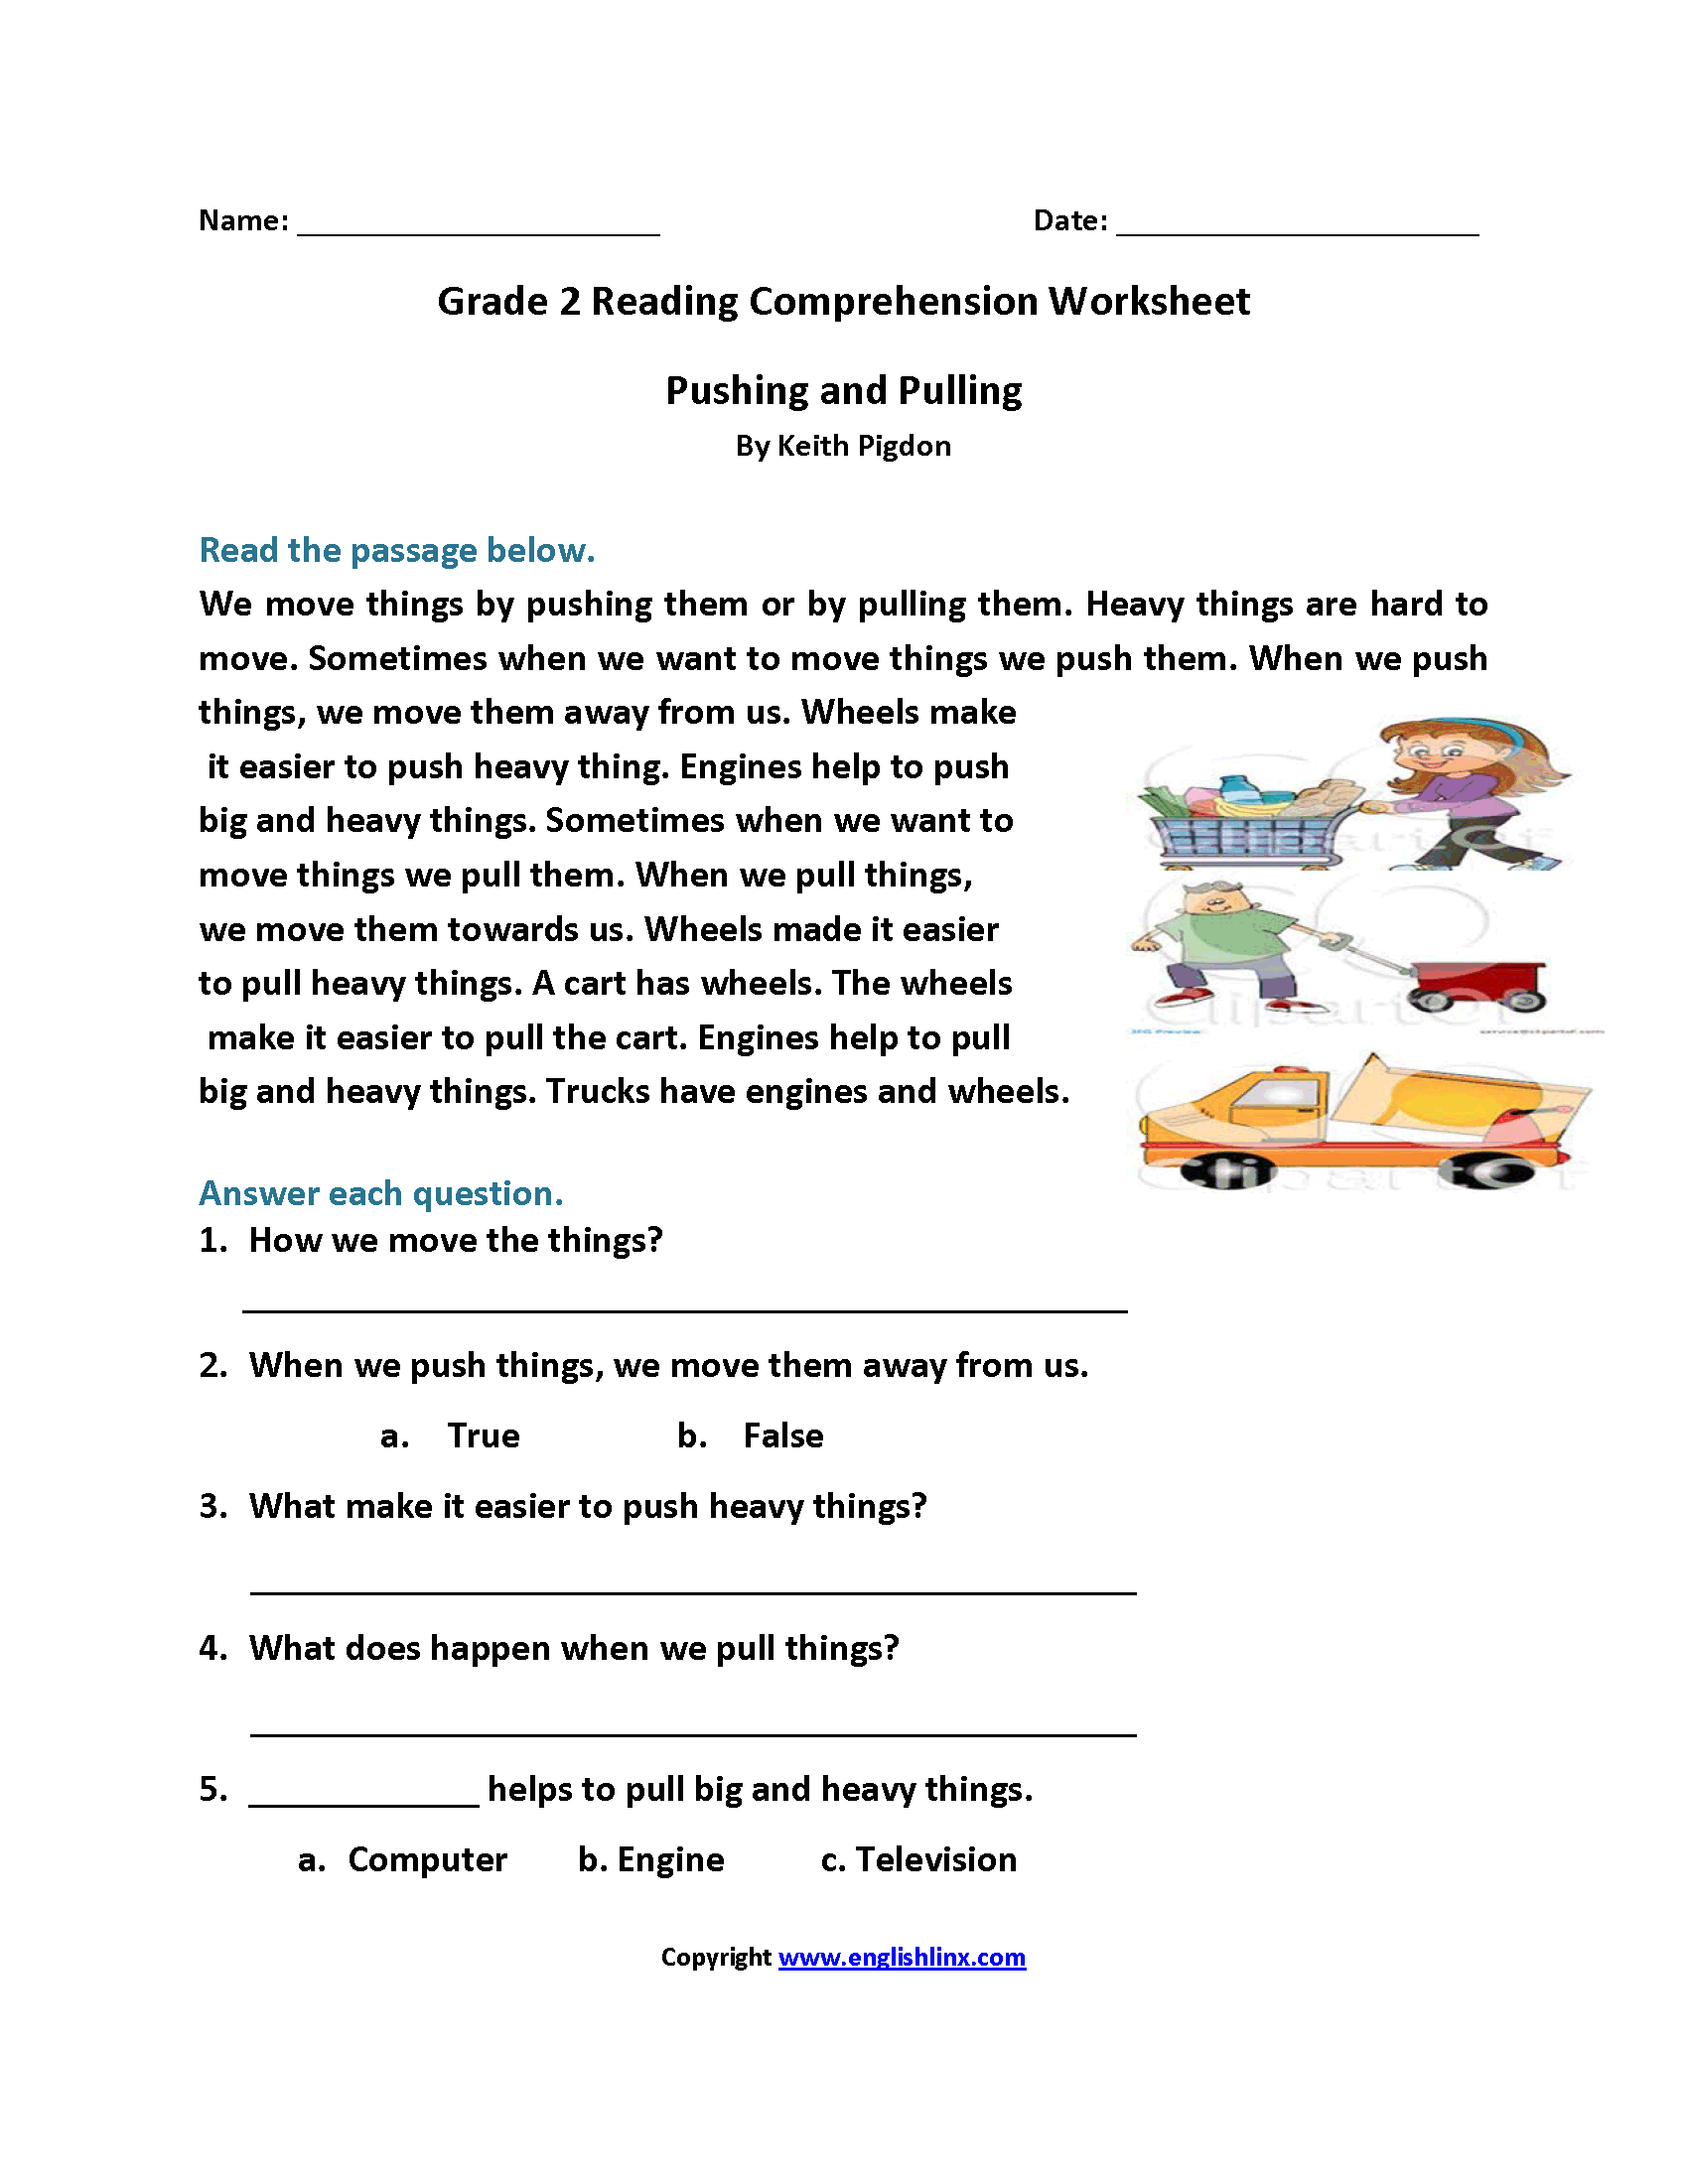 Pushing And Pulling Second Grade Reading Worksheets With